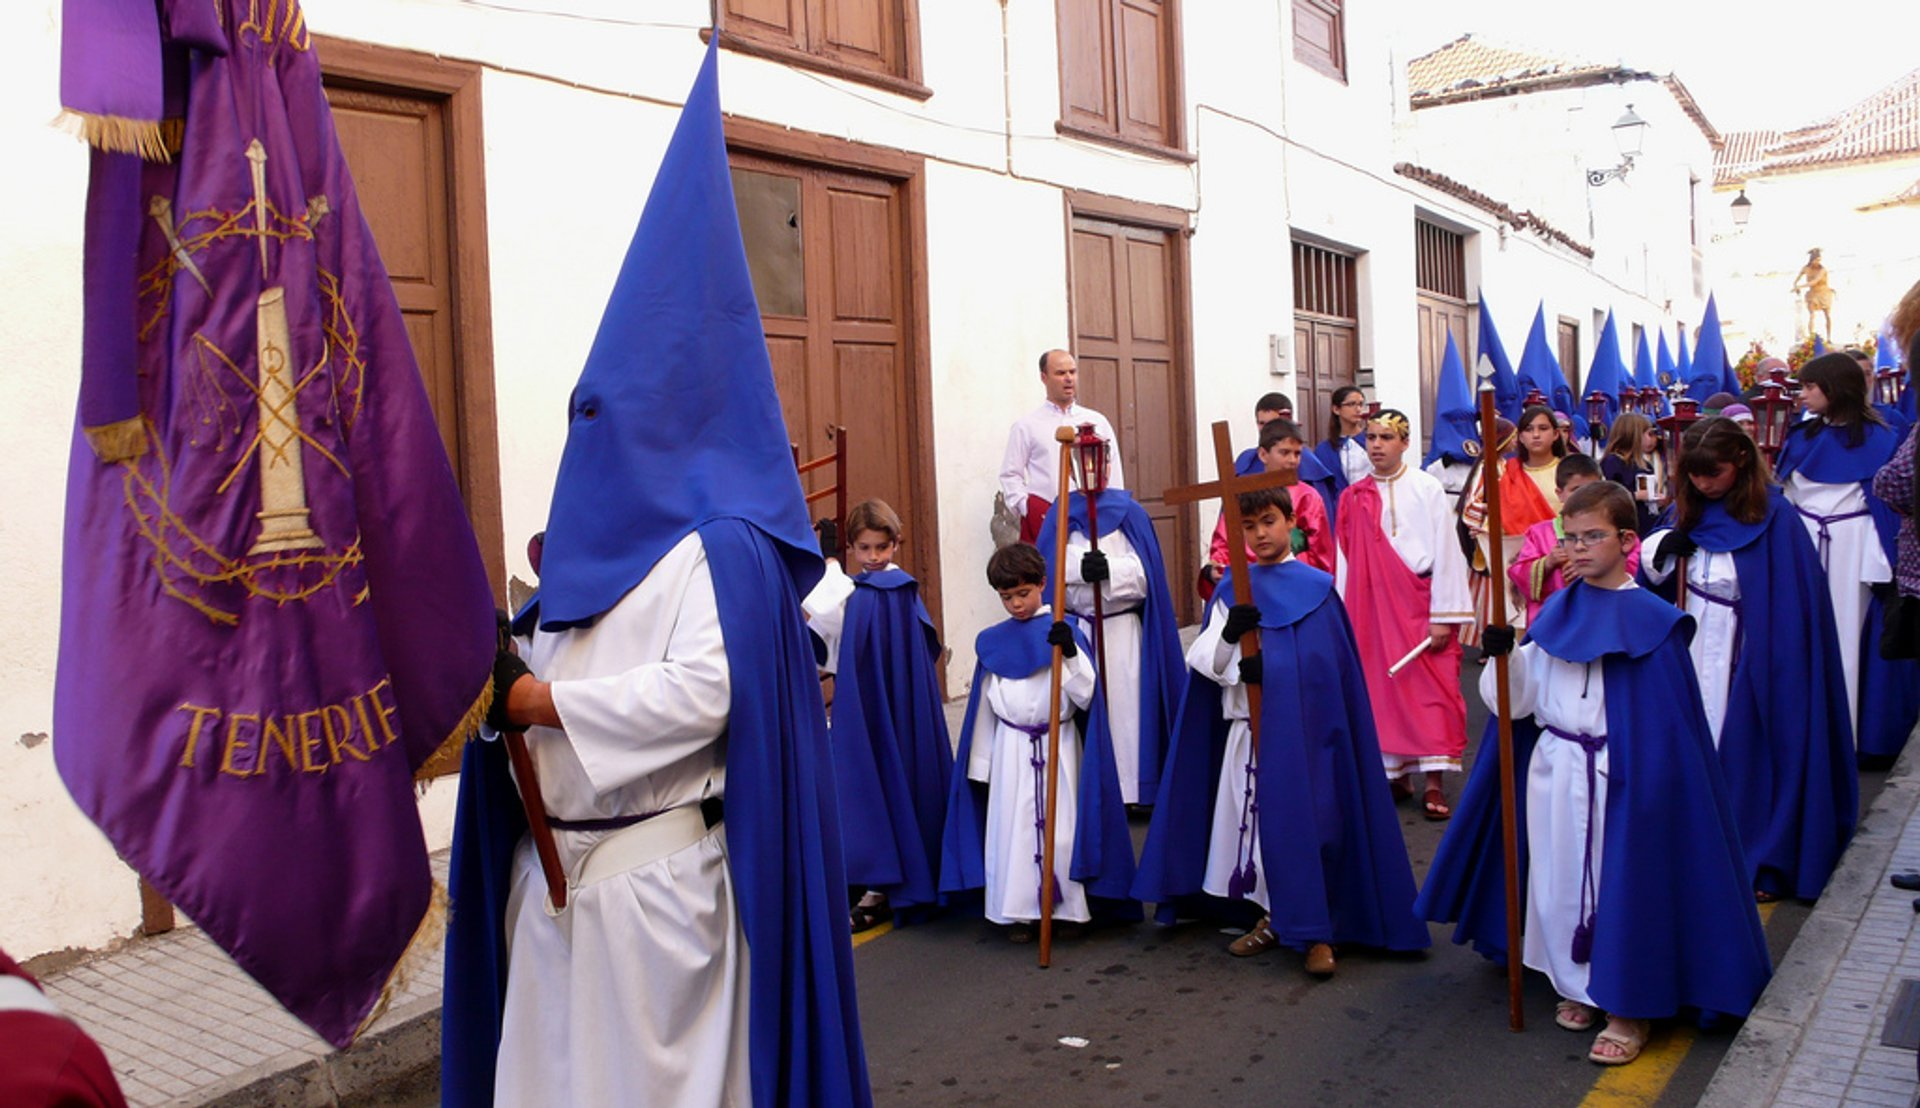 Best time for Semana Santa or Easter Holy Week in Canary Islands 2020